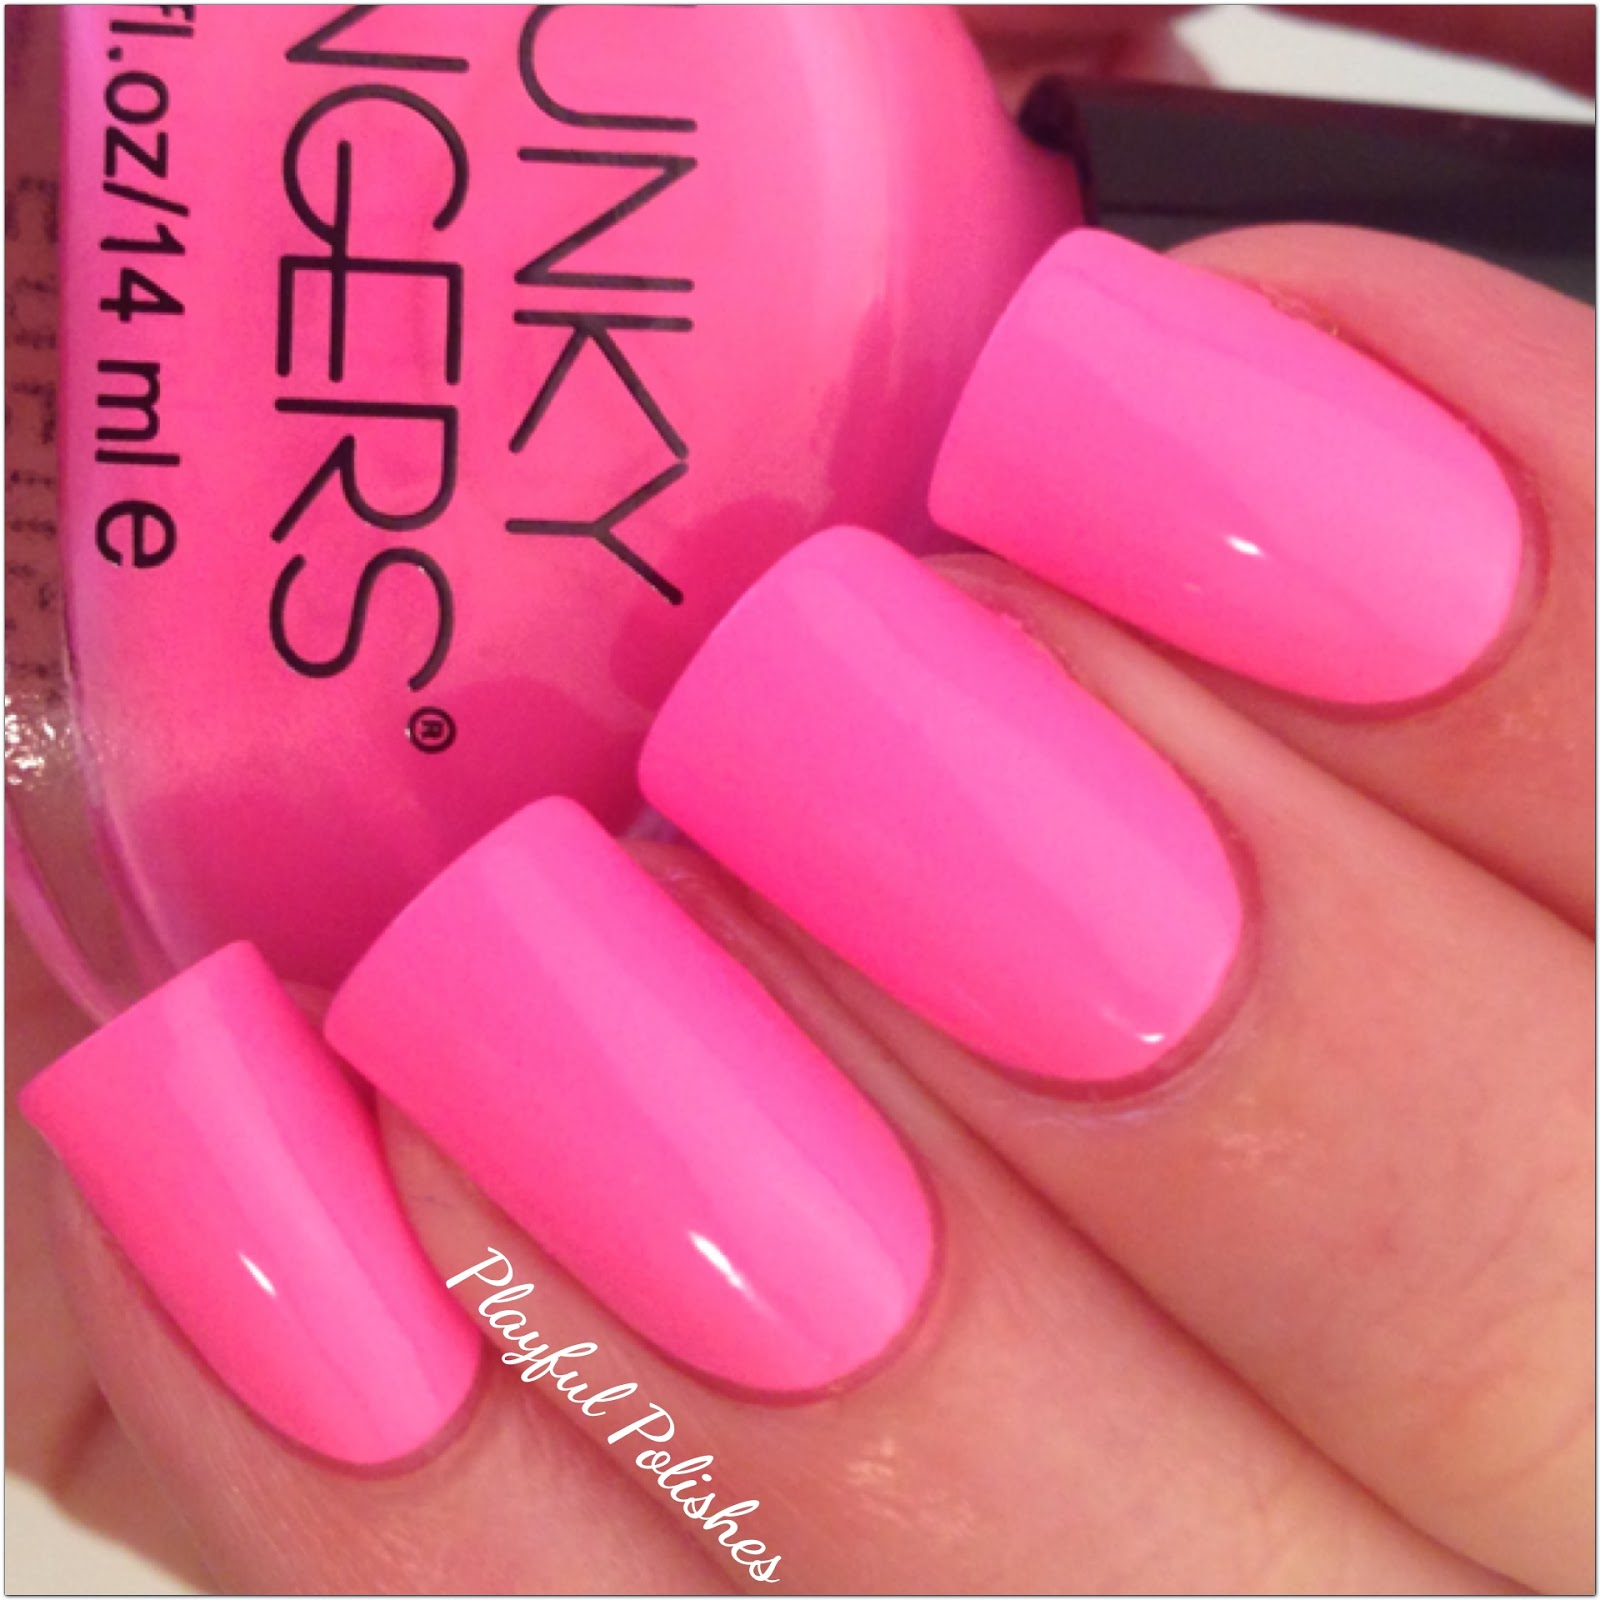 Playful Polishes Funky Fingers Swatch Review